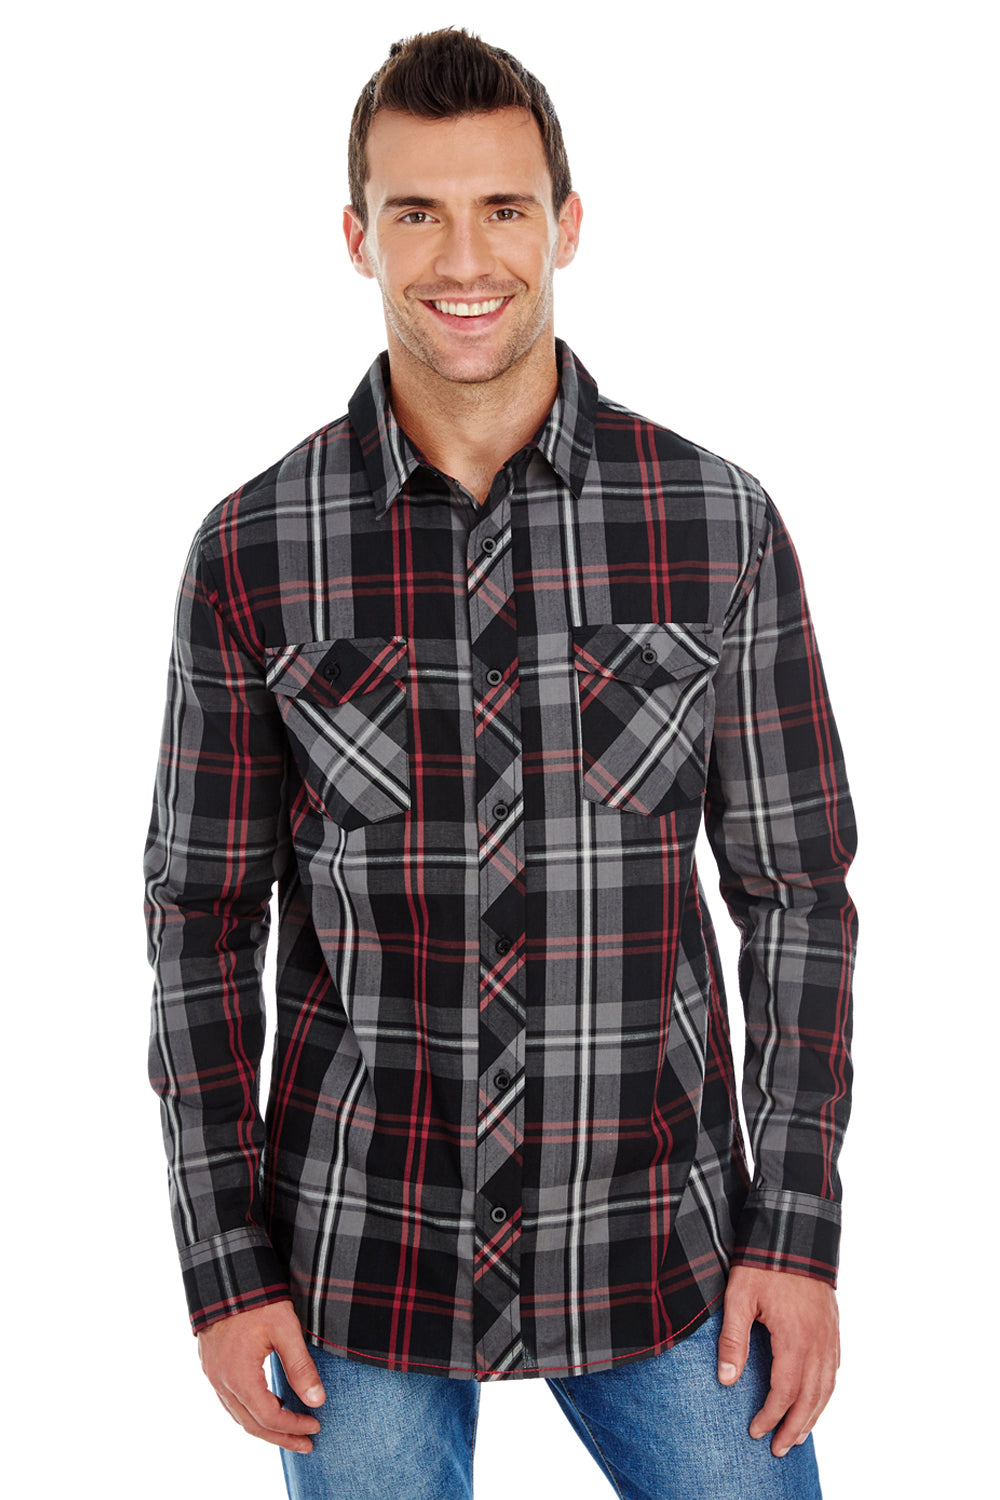 Burnside B8202 Mens Plaid Long Sleeve Button Down Shirt w/ Double Pockets Red/Black Front